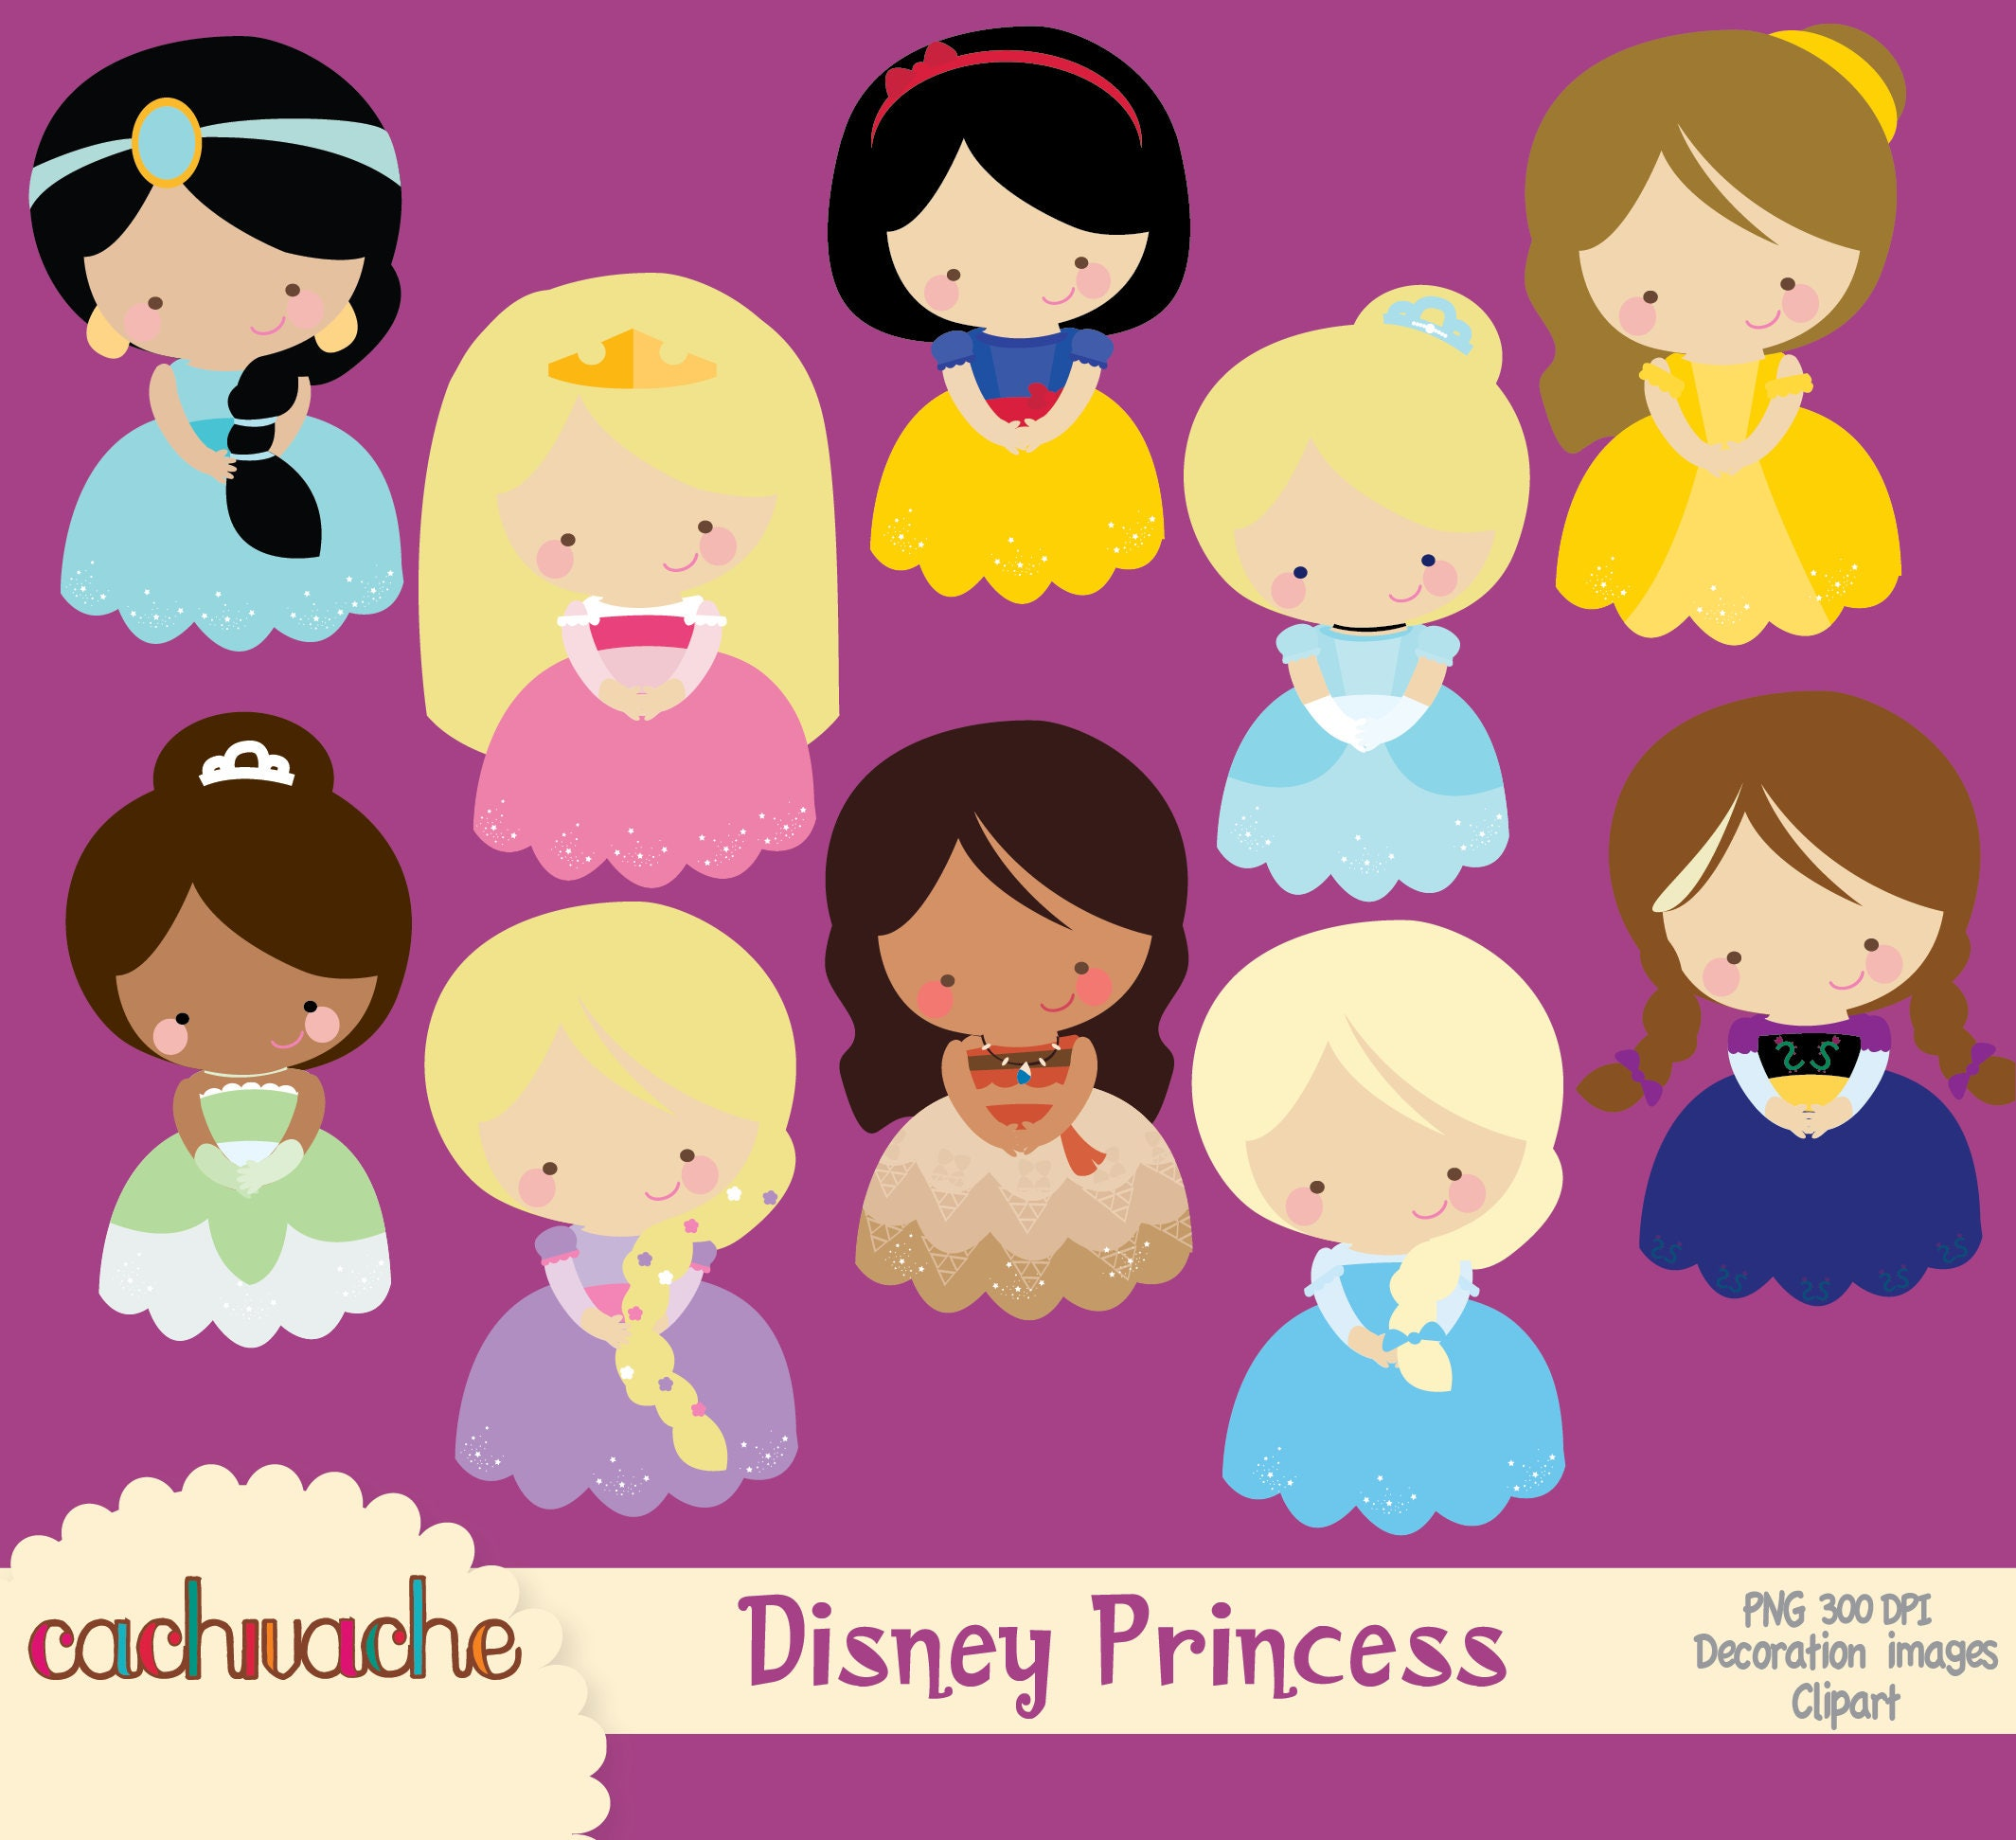 Disney princess clipart Jasmine Aurora Snow white